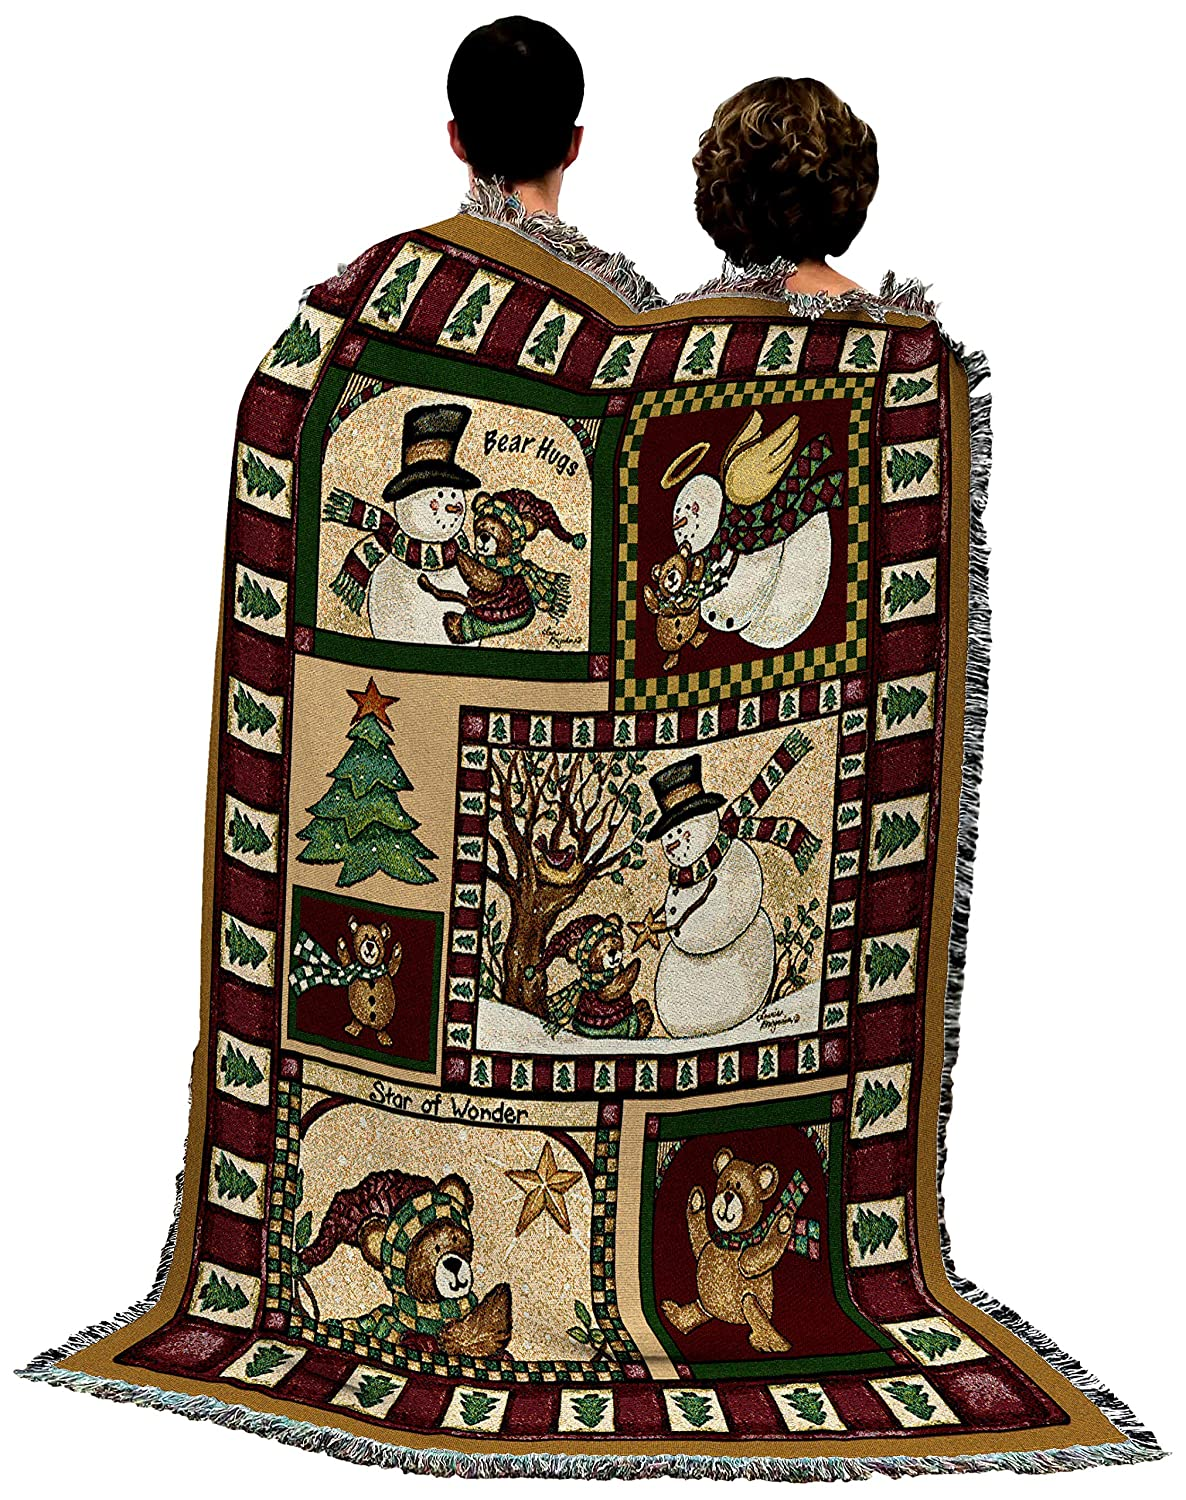 Pure Country Weavers Town Christmas Woven Tapestry Throw Blanket with Fringe Cotton USA 72x54